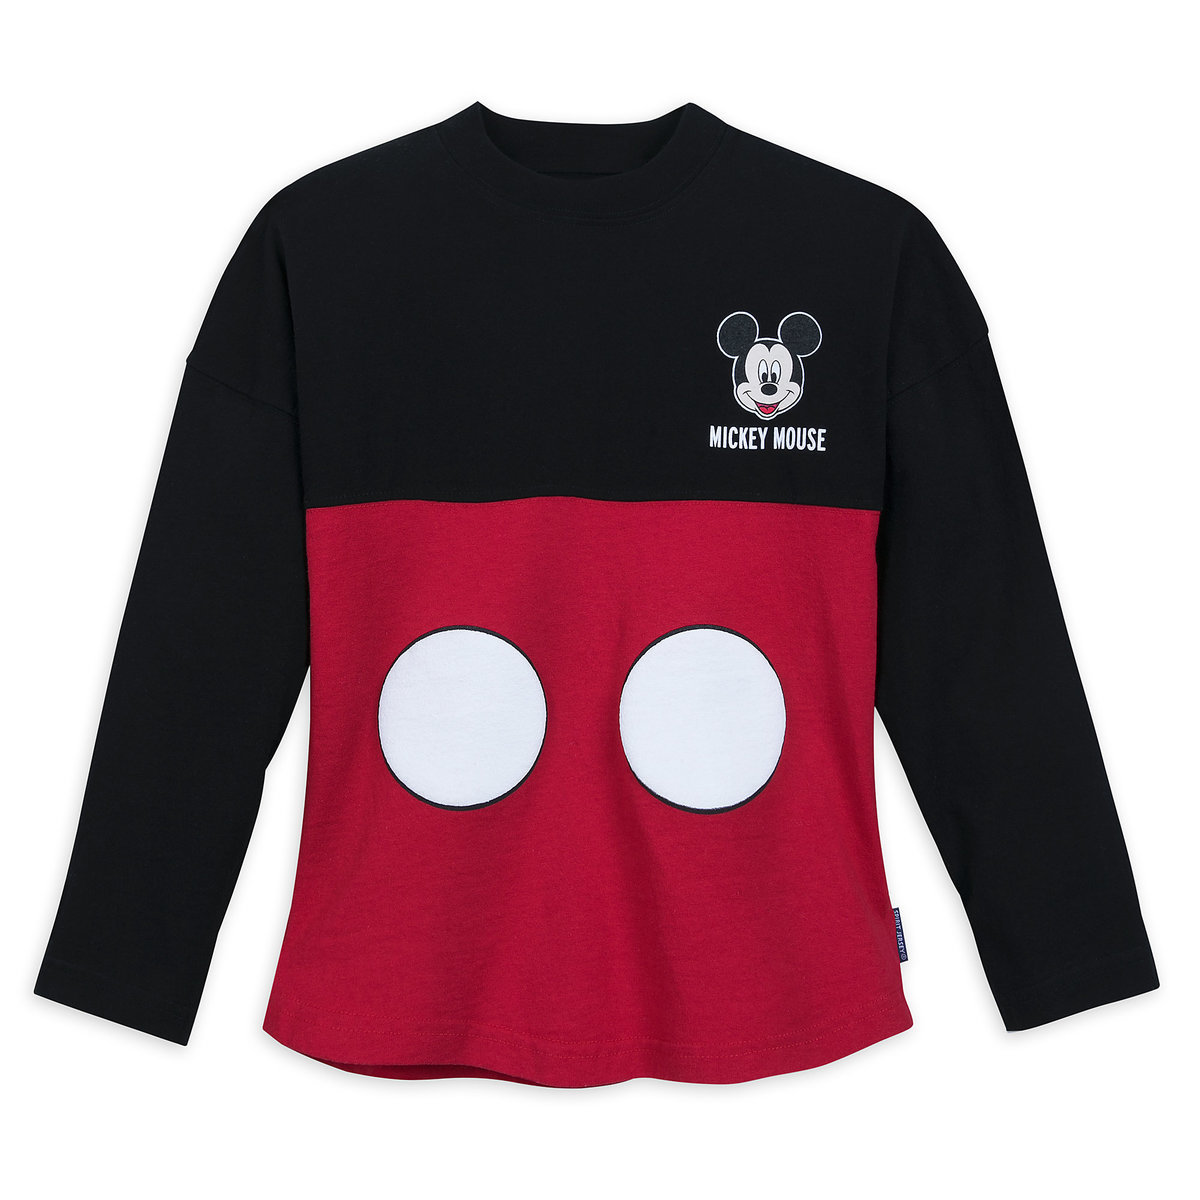 e2c4992d5 Product Image of Mickey Mouse Spirit Jersey for Kids - Walt Disney World # 1